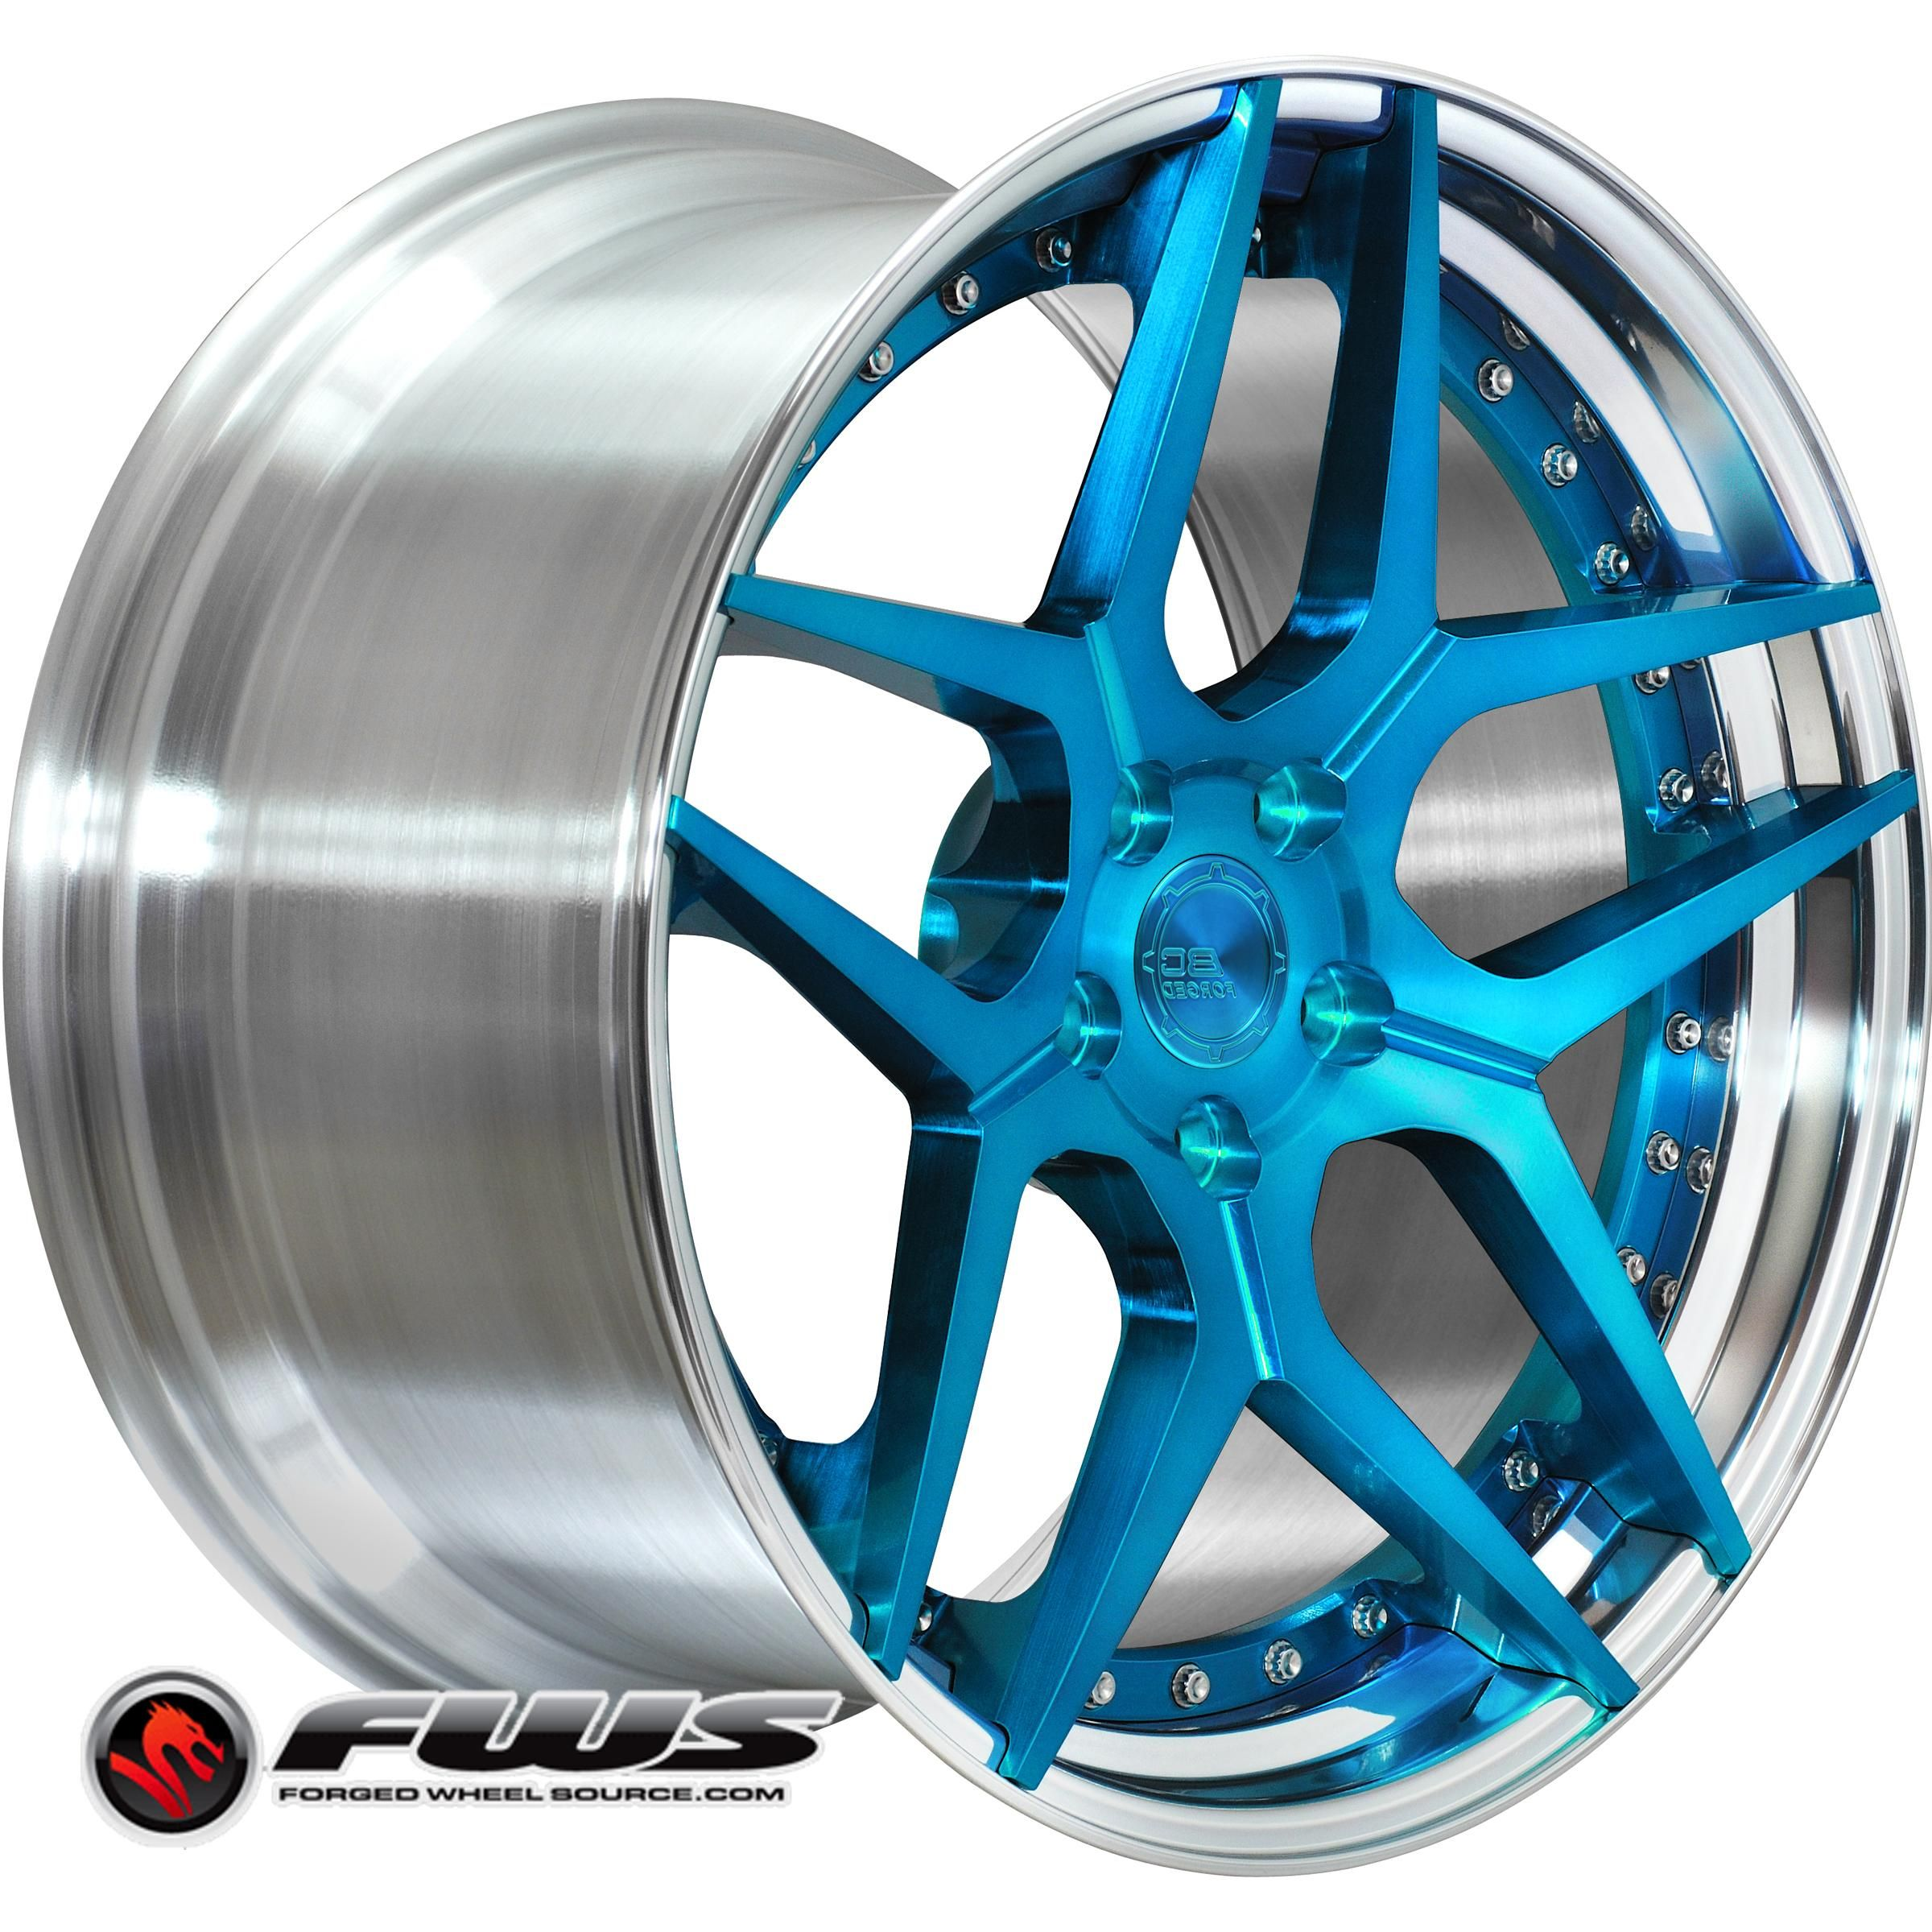 Muscle car wheels rims - photo#53